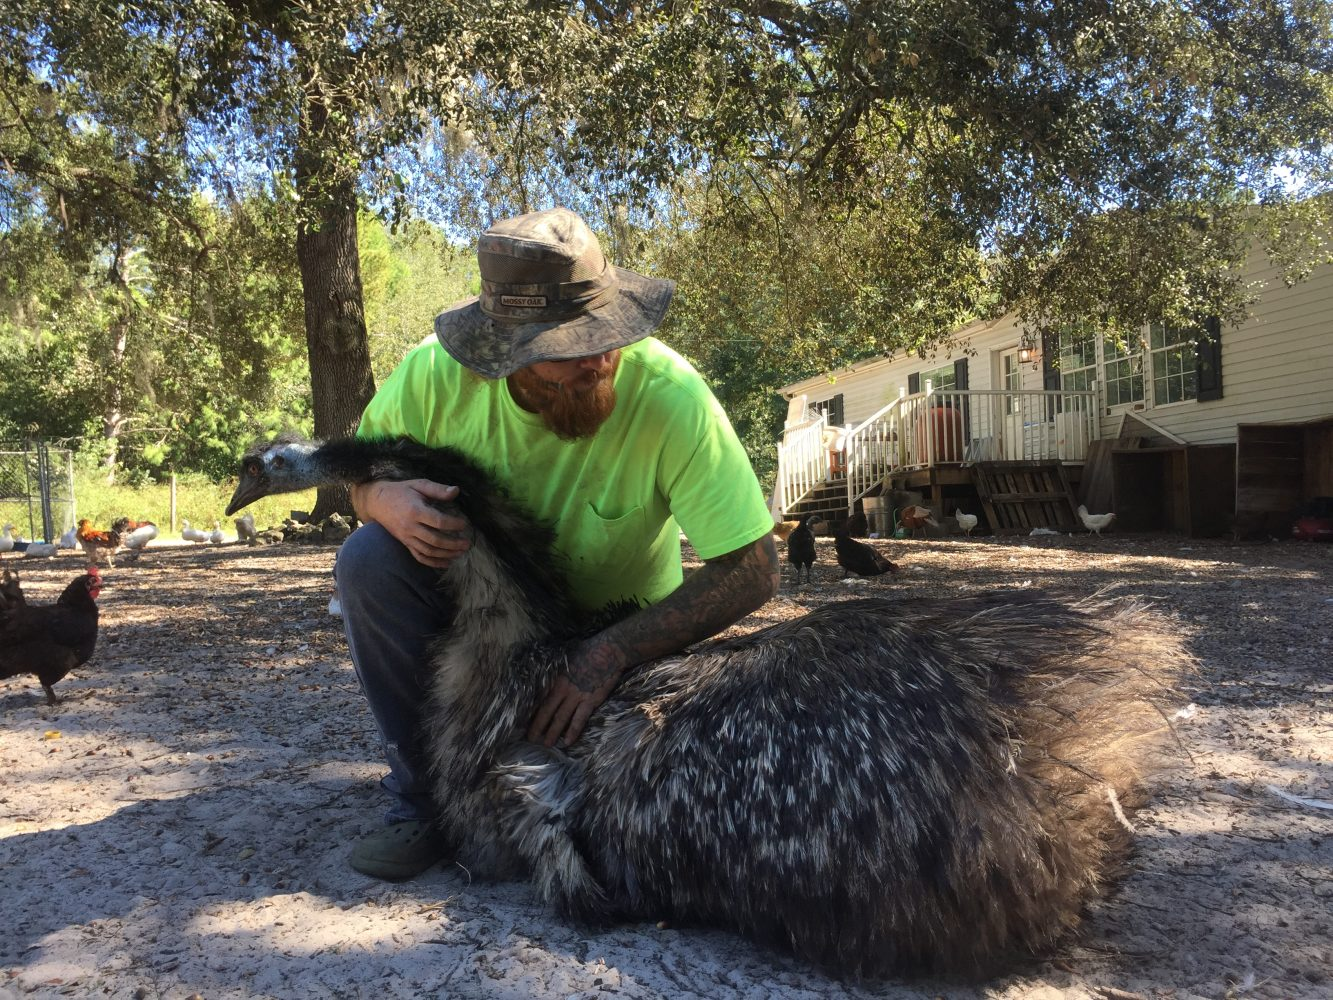 Rathay pets one of his emus, Baby Girl, Saturday. Rathay's farm is a licensed hatchery and sells emu and other eggs. (Sara Girard/WUFT)